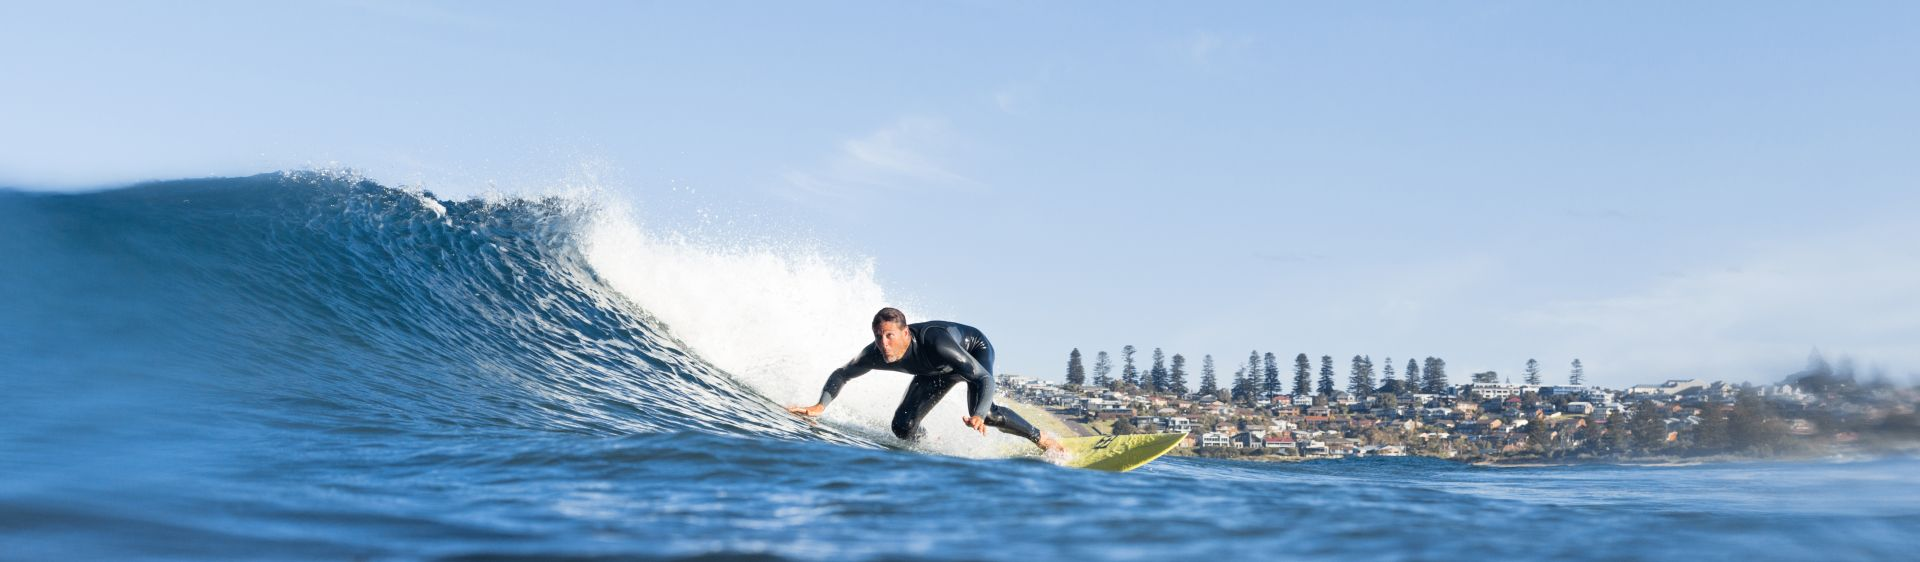 Surfing at Werri Beach, Gerringong, NSW South Coast